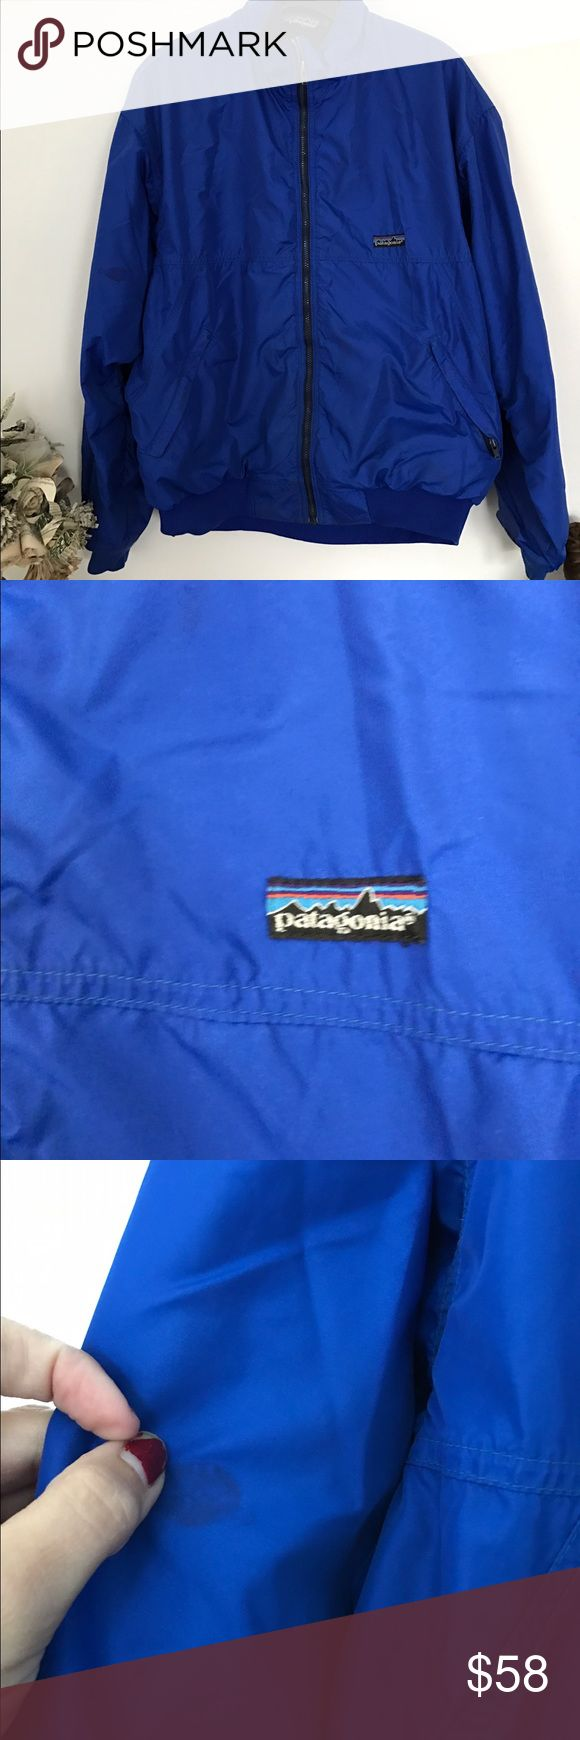 Vintage Patagonia ski jacket L GUC Great condition other then a small stain on inside of right arm. Smoke and pet free home. Bundle discount 20% Patagonia Jackets & Coats